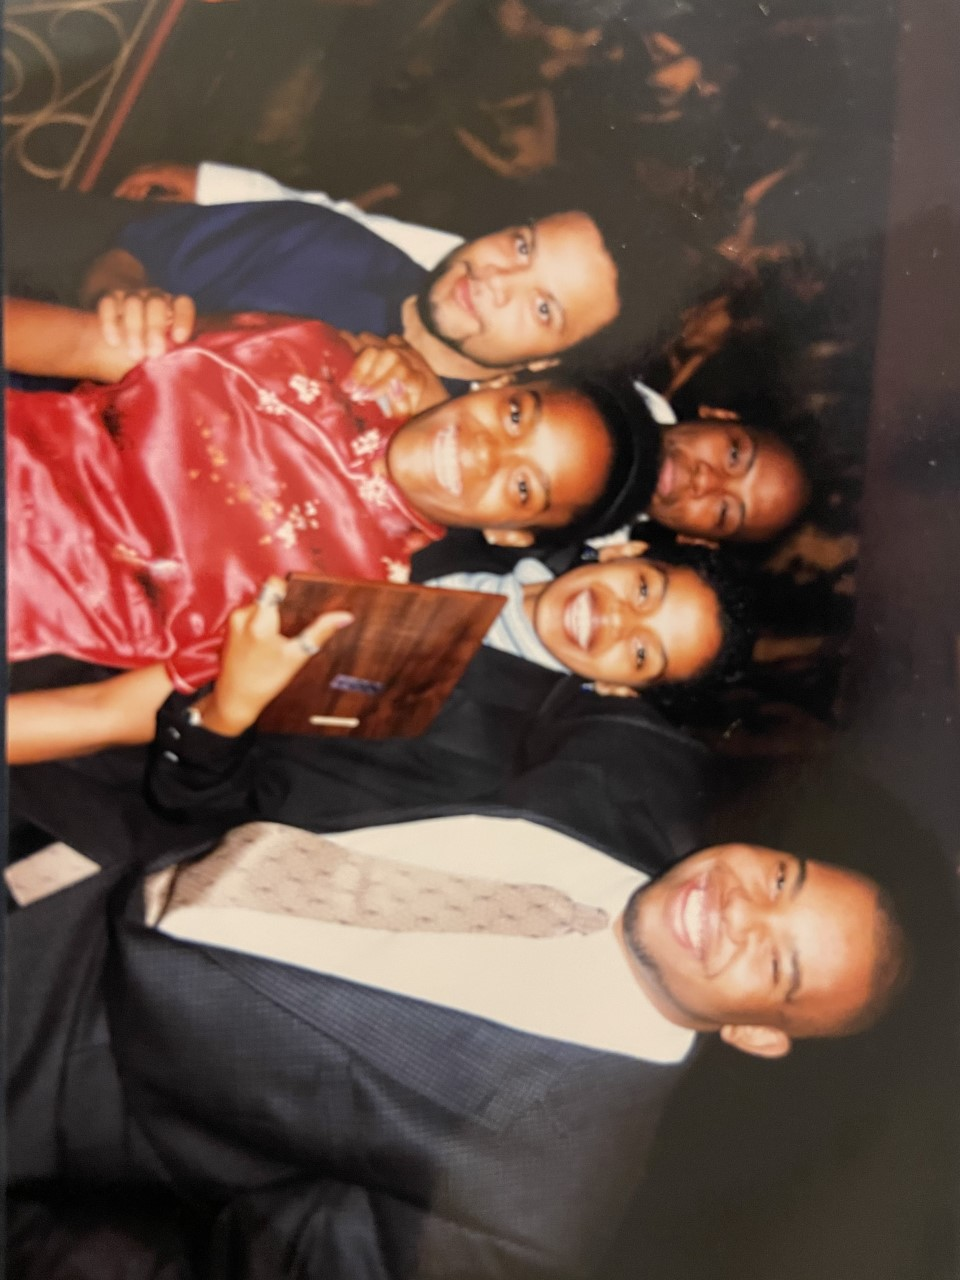 Reginold Royson, Bobbie White, unidentified woman, Aida Muluneh and Ta'Nehisi Coates at Howard University Hilltop Banquet c. 1997